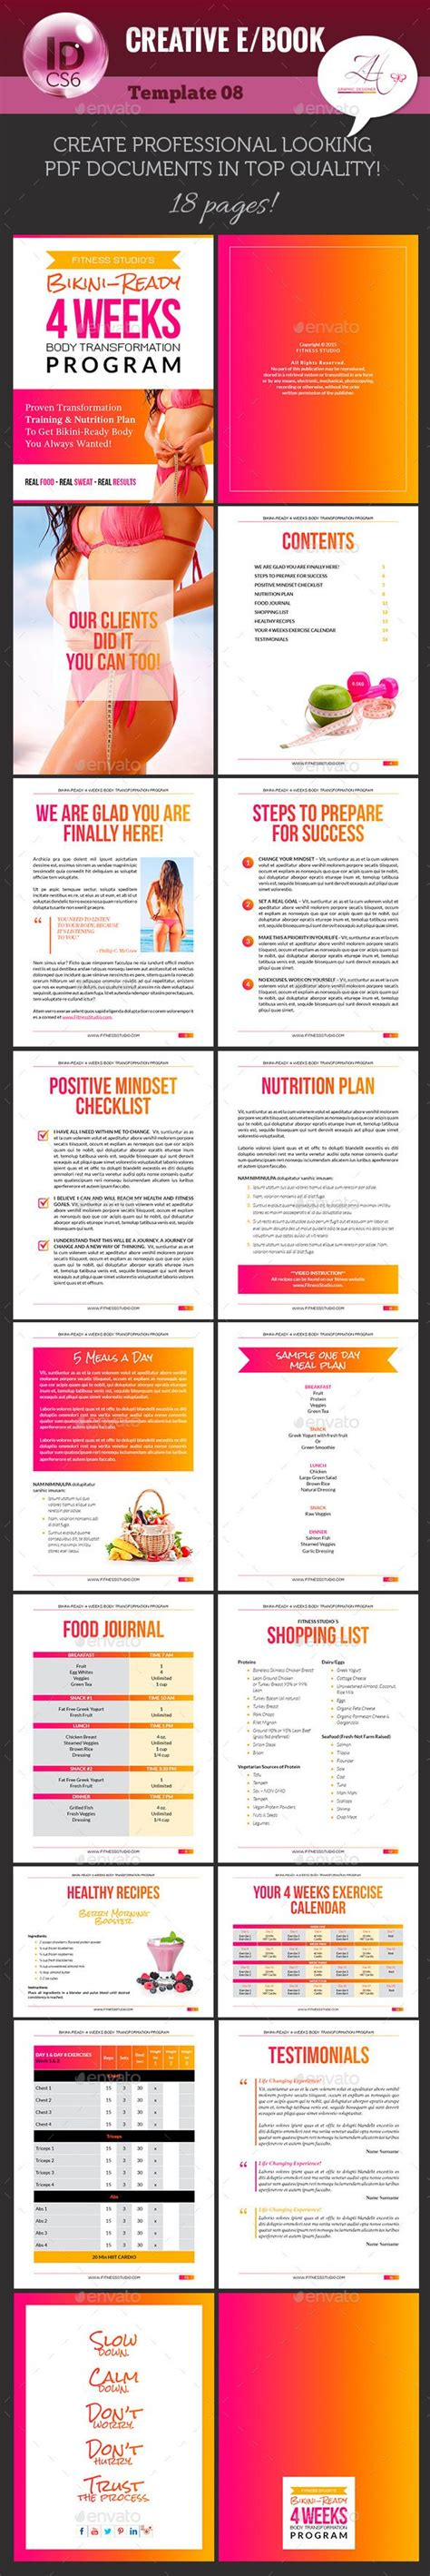 Creative E Book V 08 Designs Fitness Ebook Template